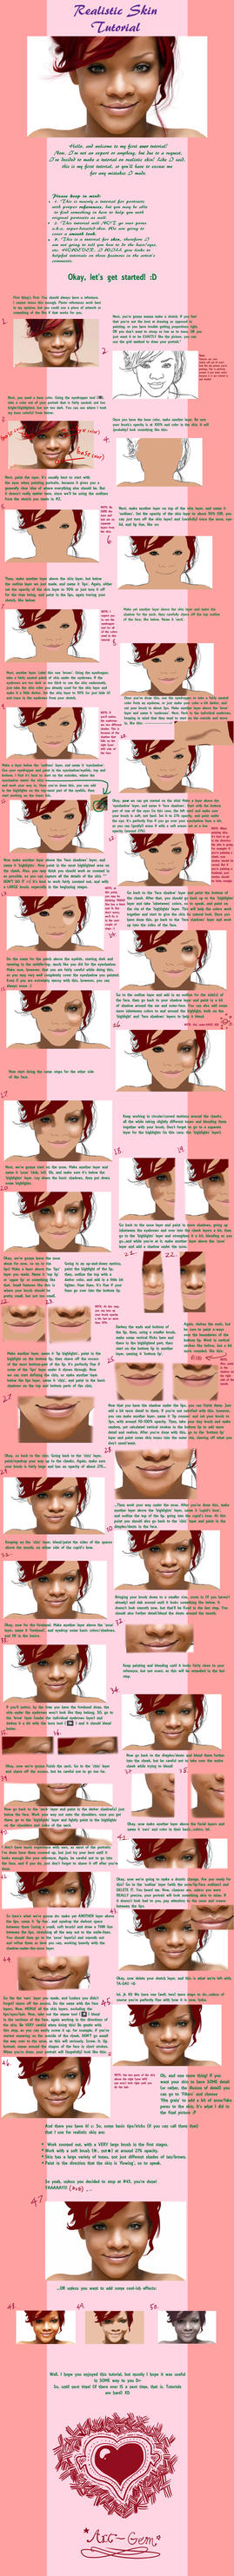 Realistic Skin Tutorial by Art-Gem